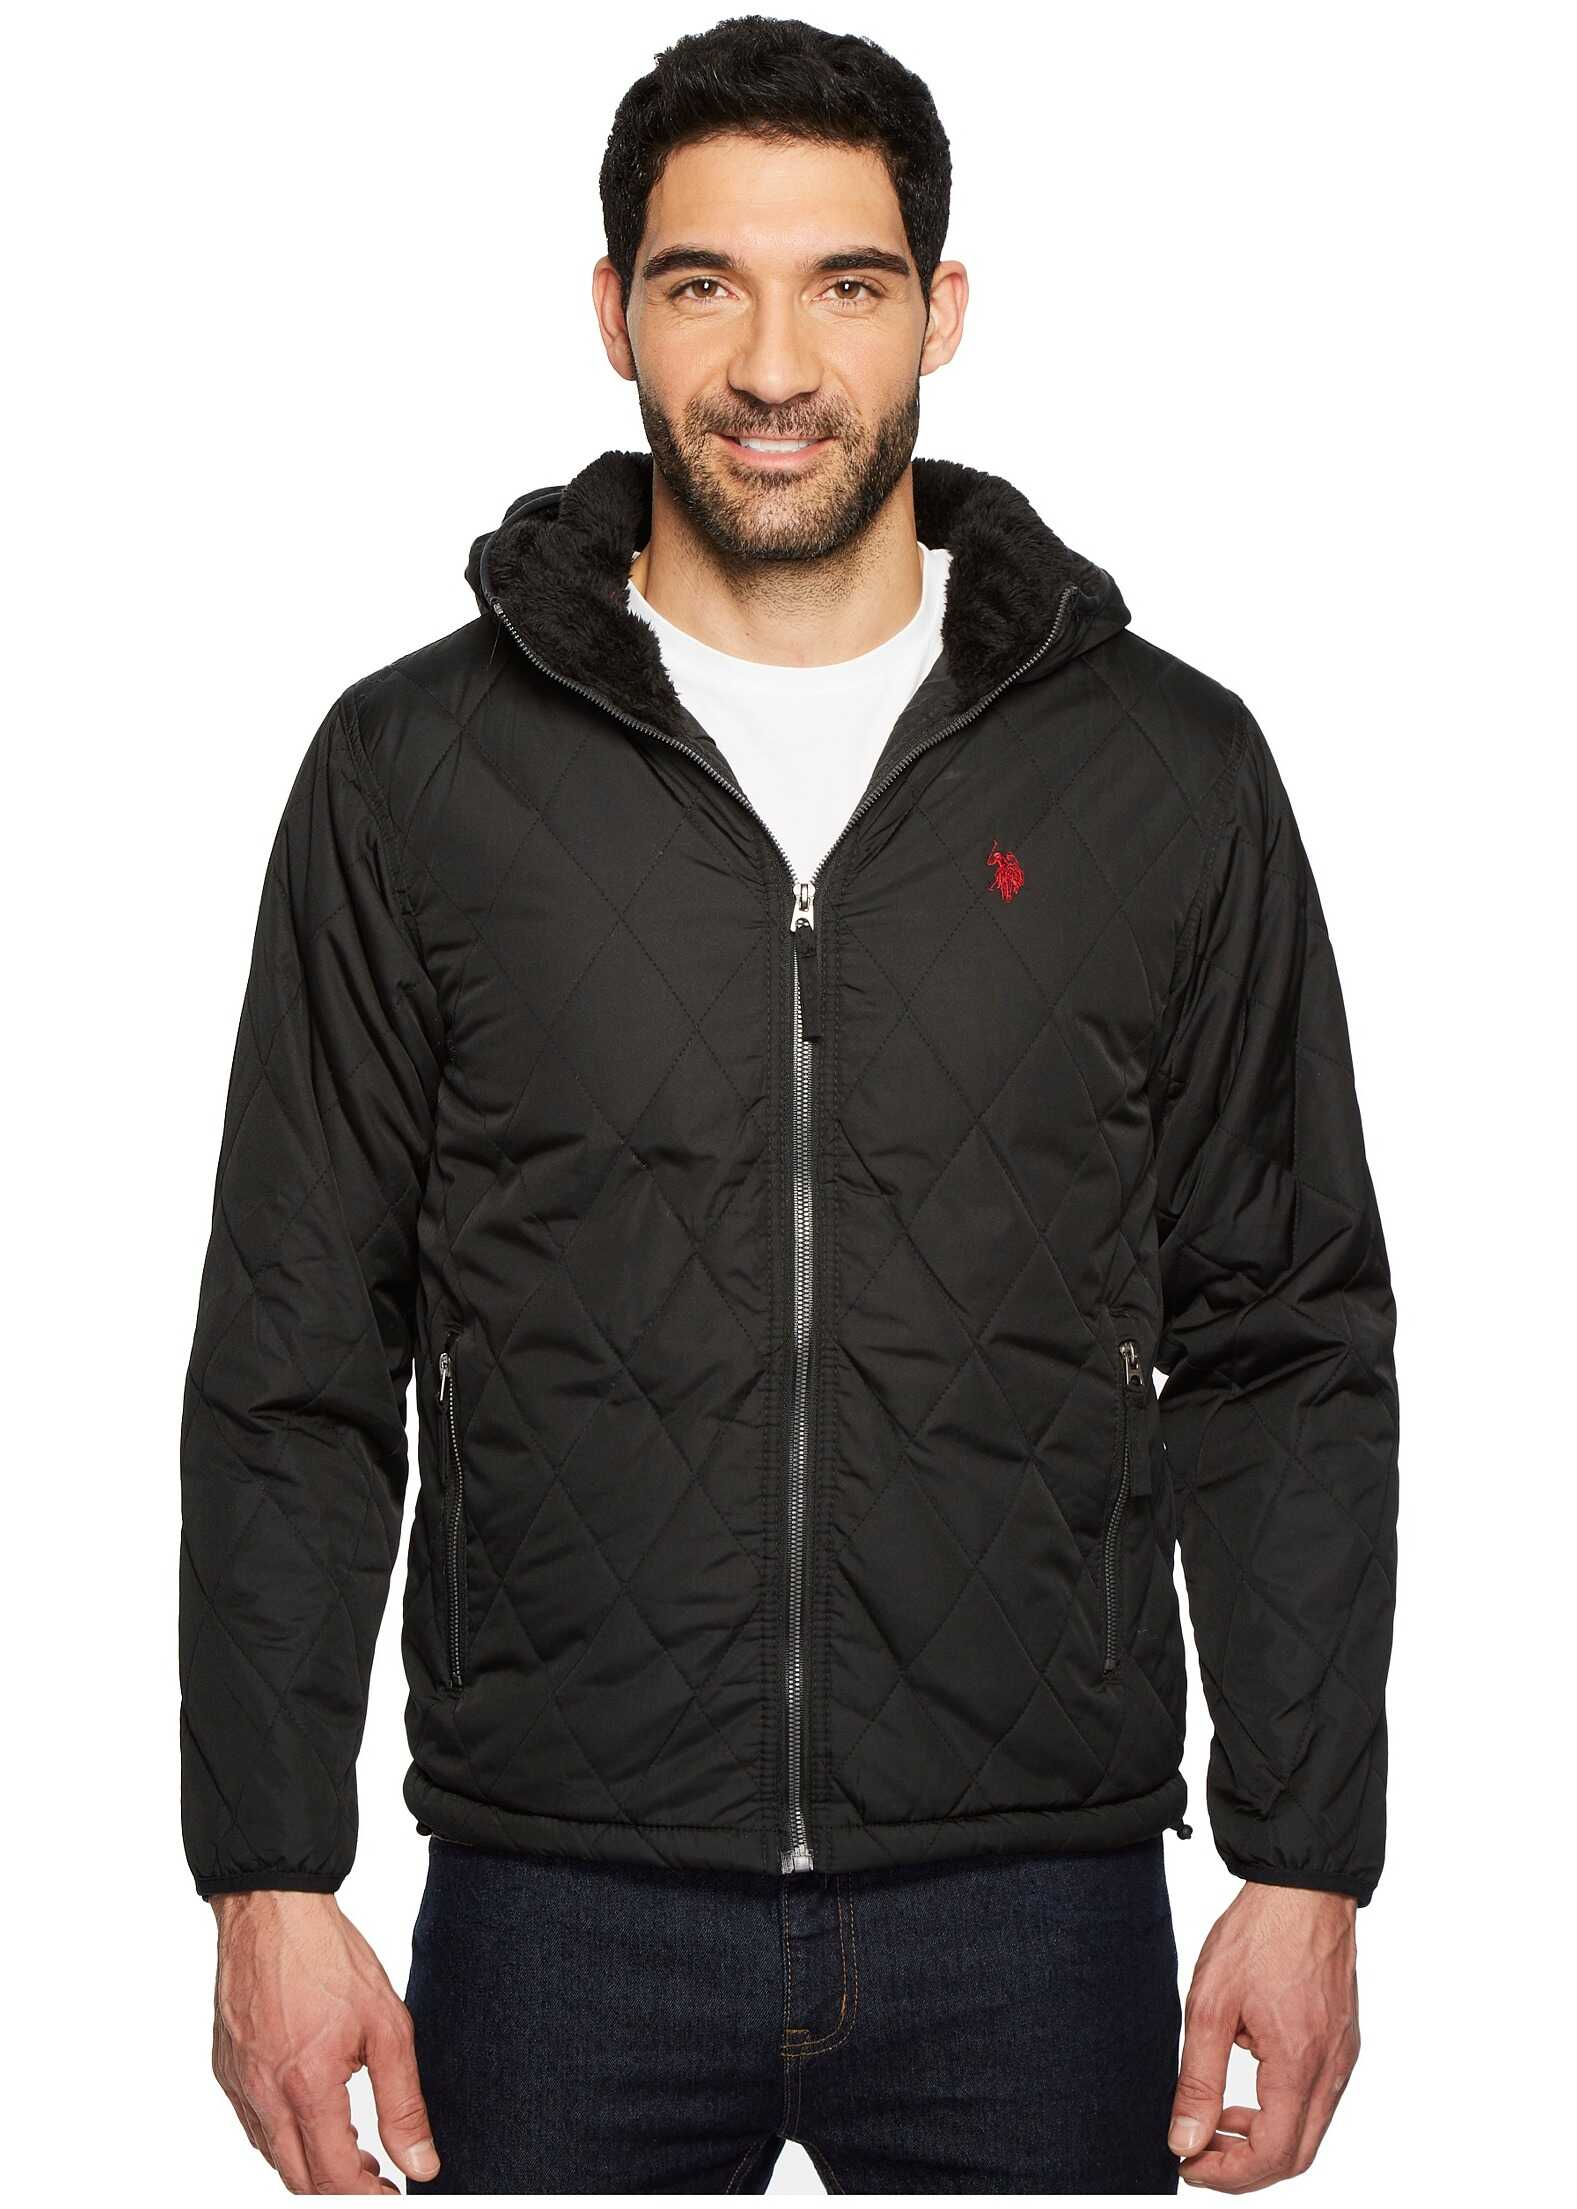 U.S. POLO ASSN. Diamond Quilted Hooded Jacket Black